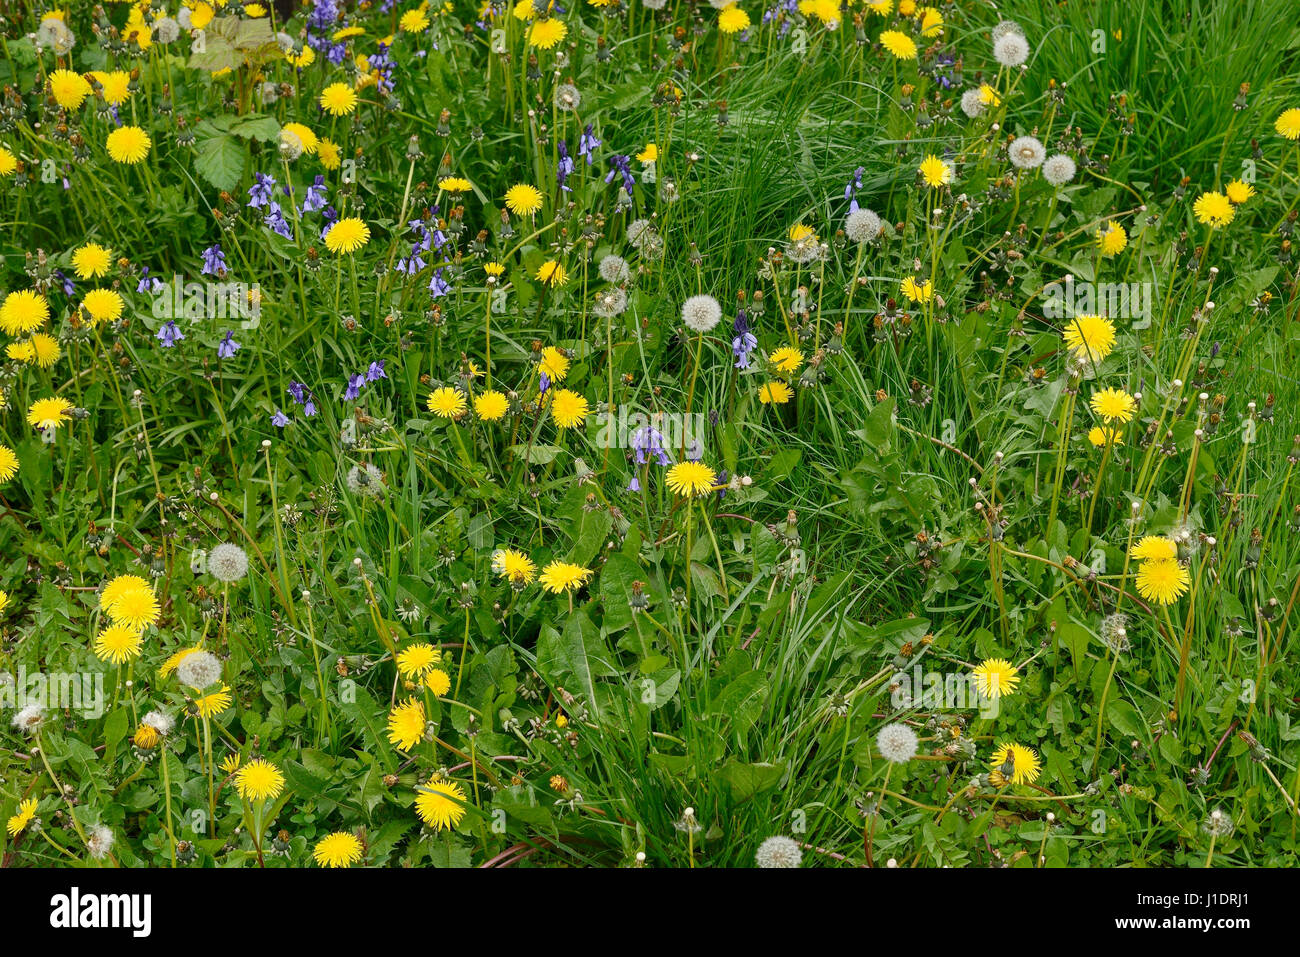 A front garden overgrown with grass, weeds and dandelions - Stock Image